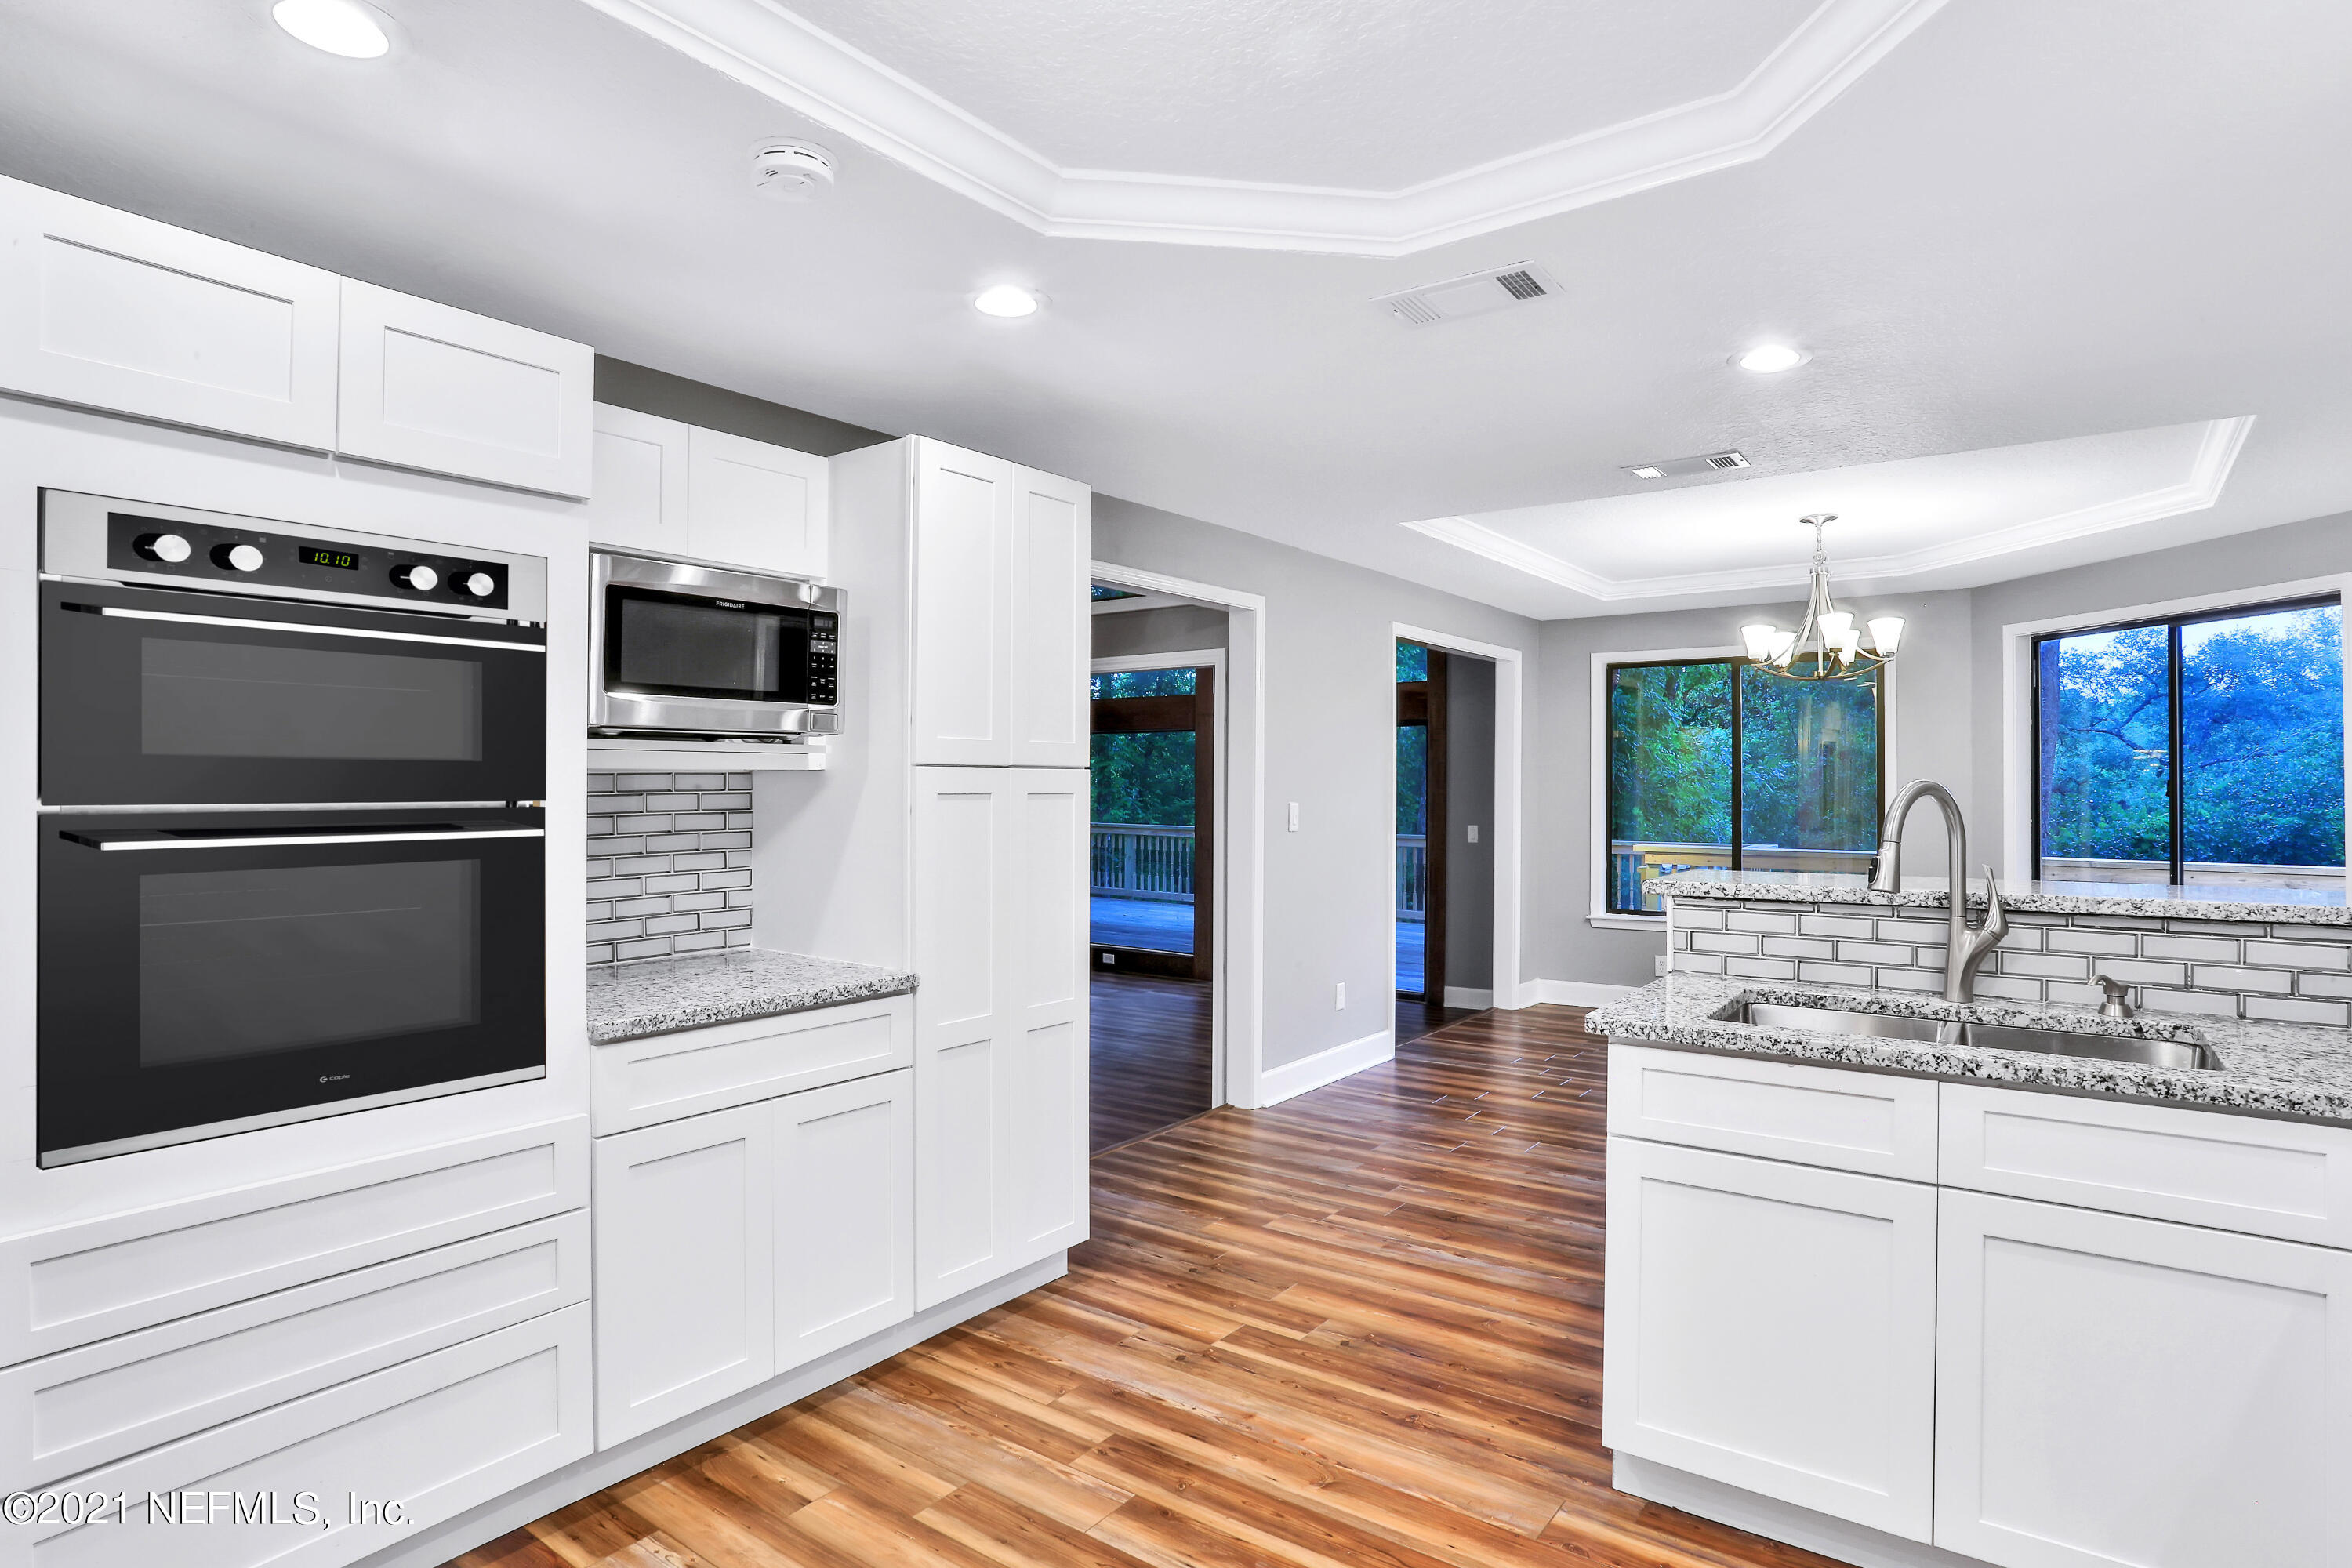 4099 HALL BOREE, MIDDLEBURG, FLORIDA 32068, 4 Bedrooms Bedrooms, ,3 BathroomsBathrooms,Residential,For sale,HALL BOREE,1111425